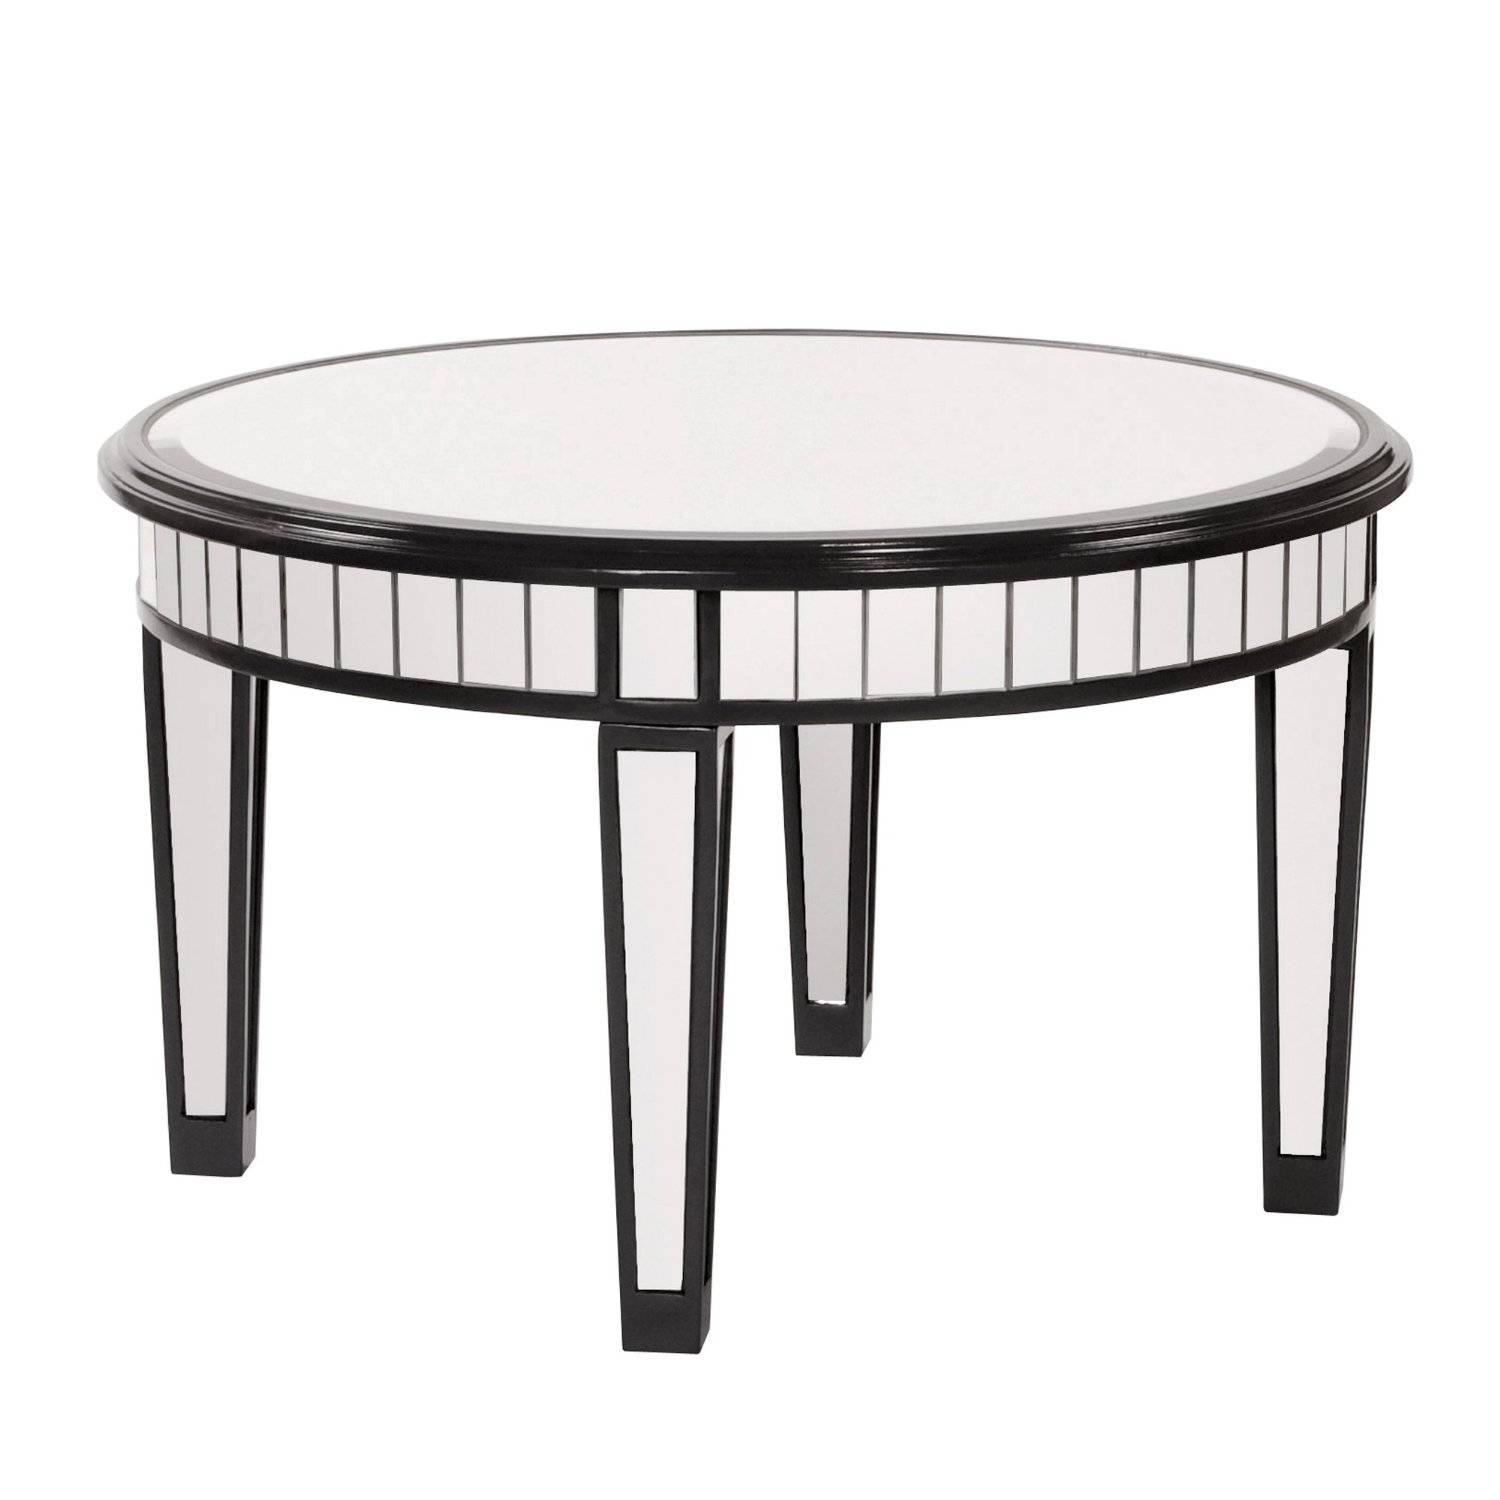 Coffee Table : Mirrored Coffee Table Round Circle Mirrored Coffee within Oval Mirrored Coffee Tables (Image 5 of 30)